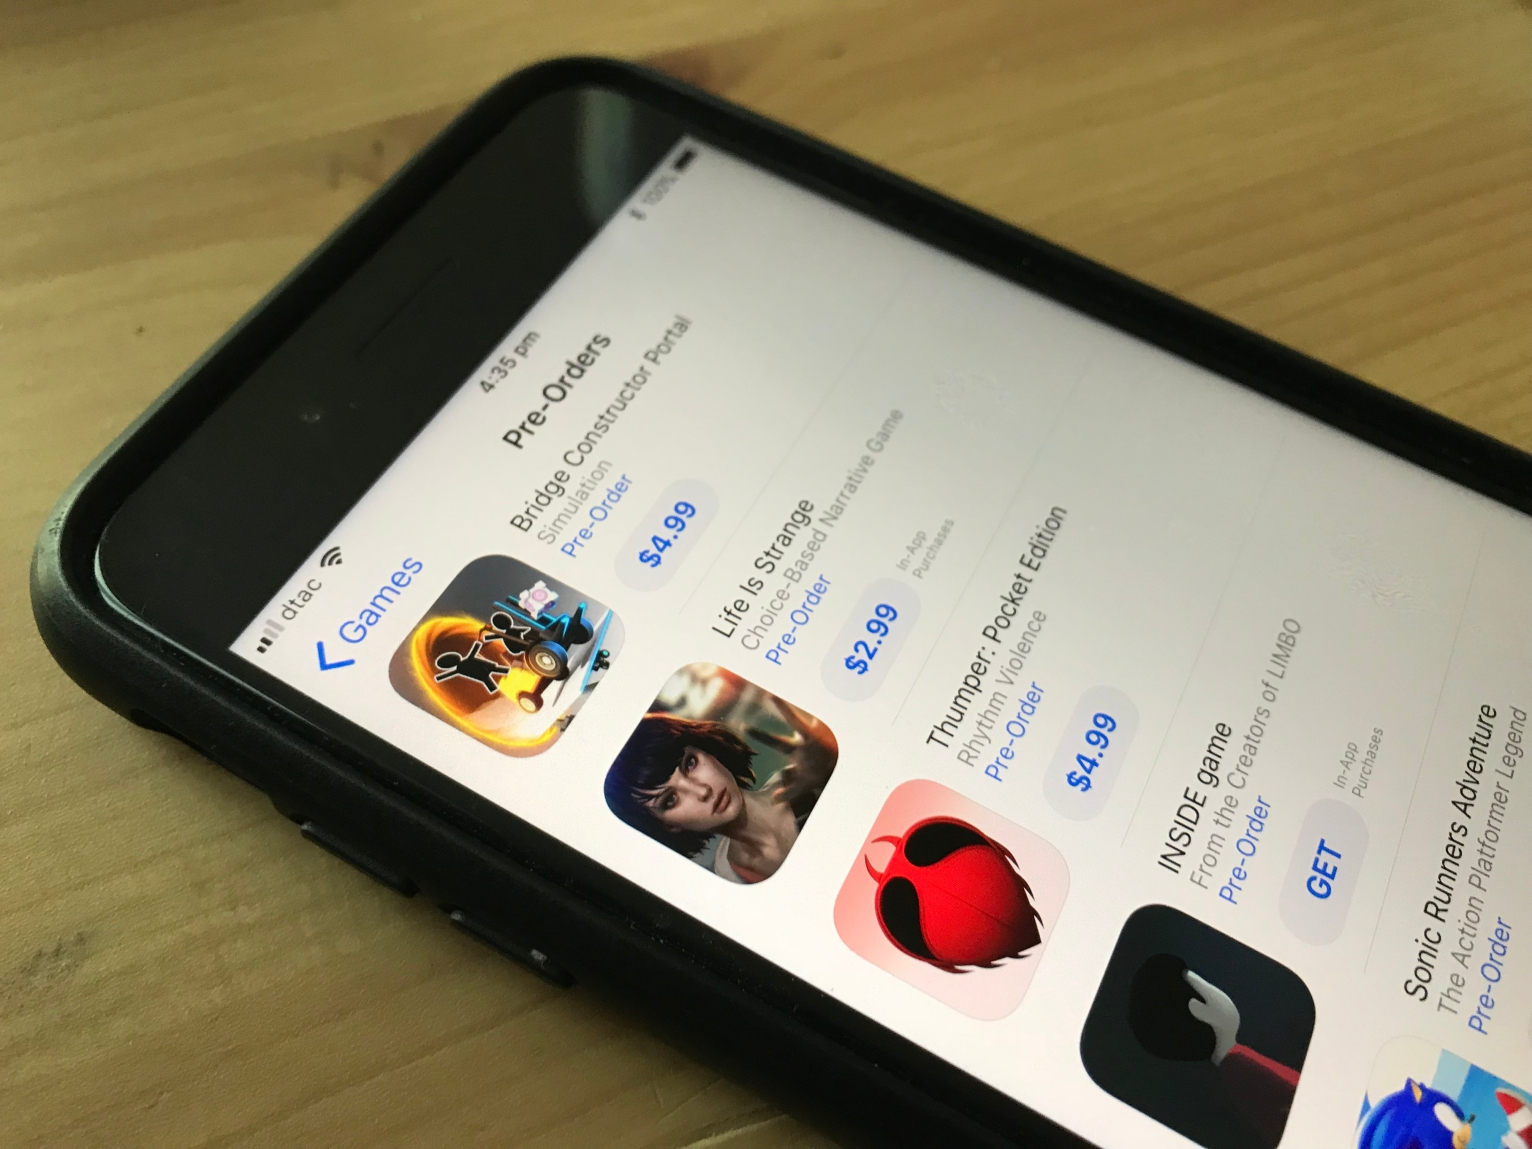 Apple's App Store now lets you pre-order iOS apps and games before